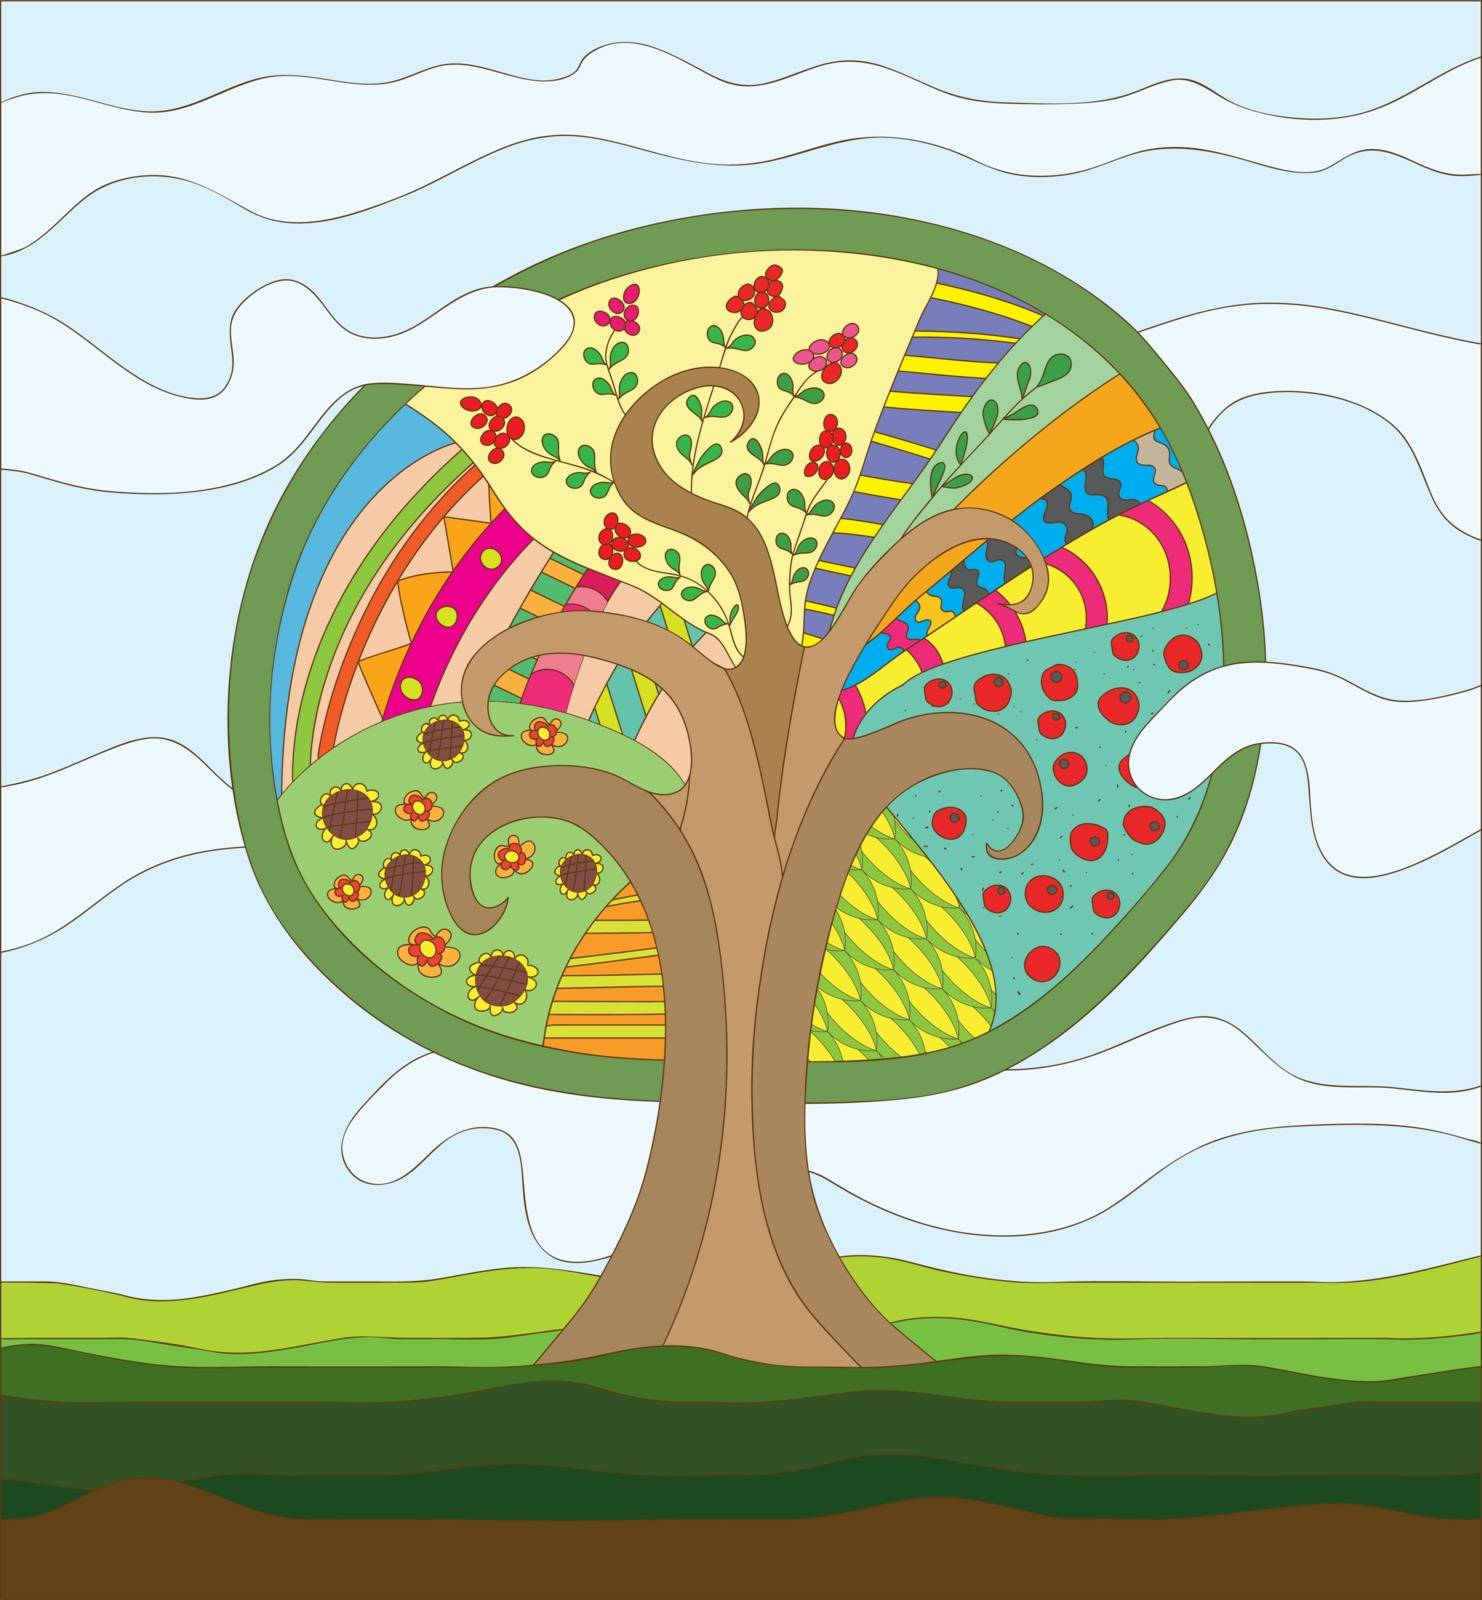 Fairy Tree vector illustration with different leaves, fruits and berries